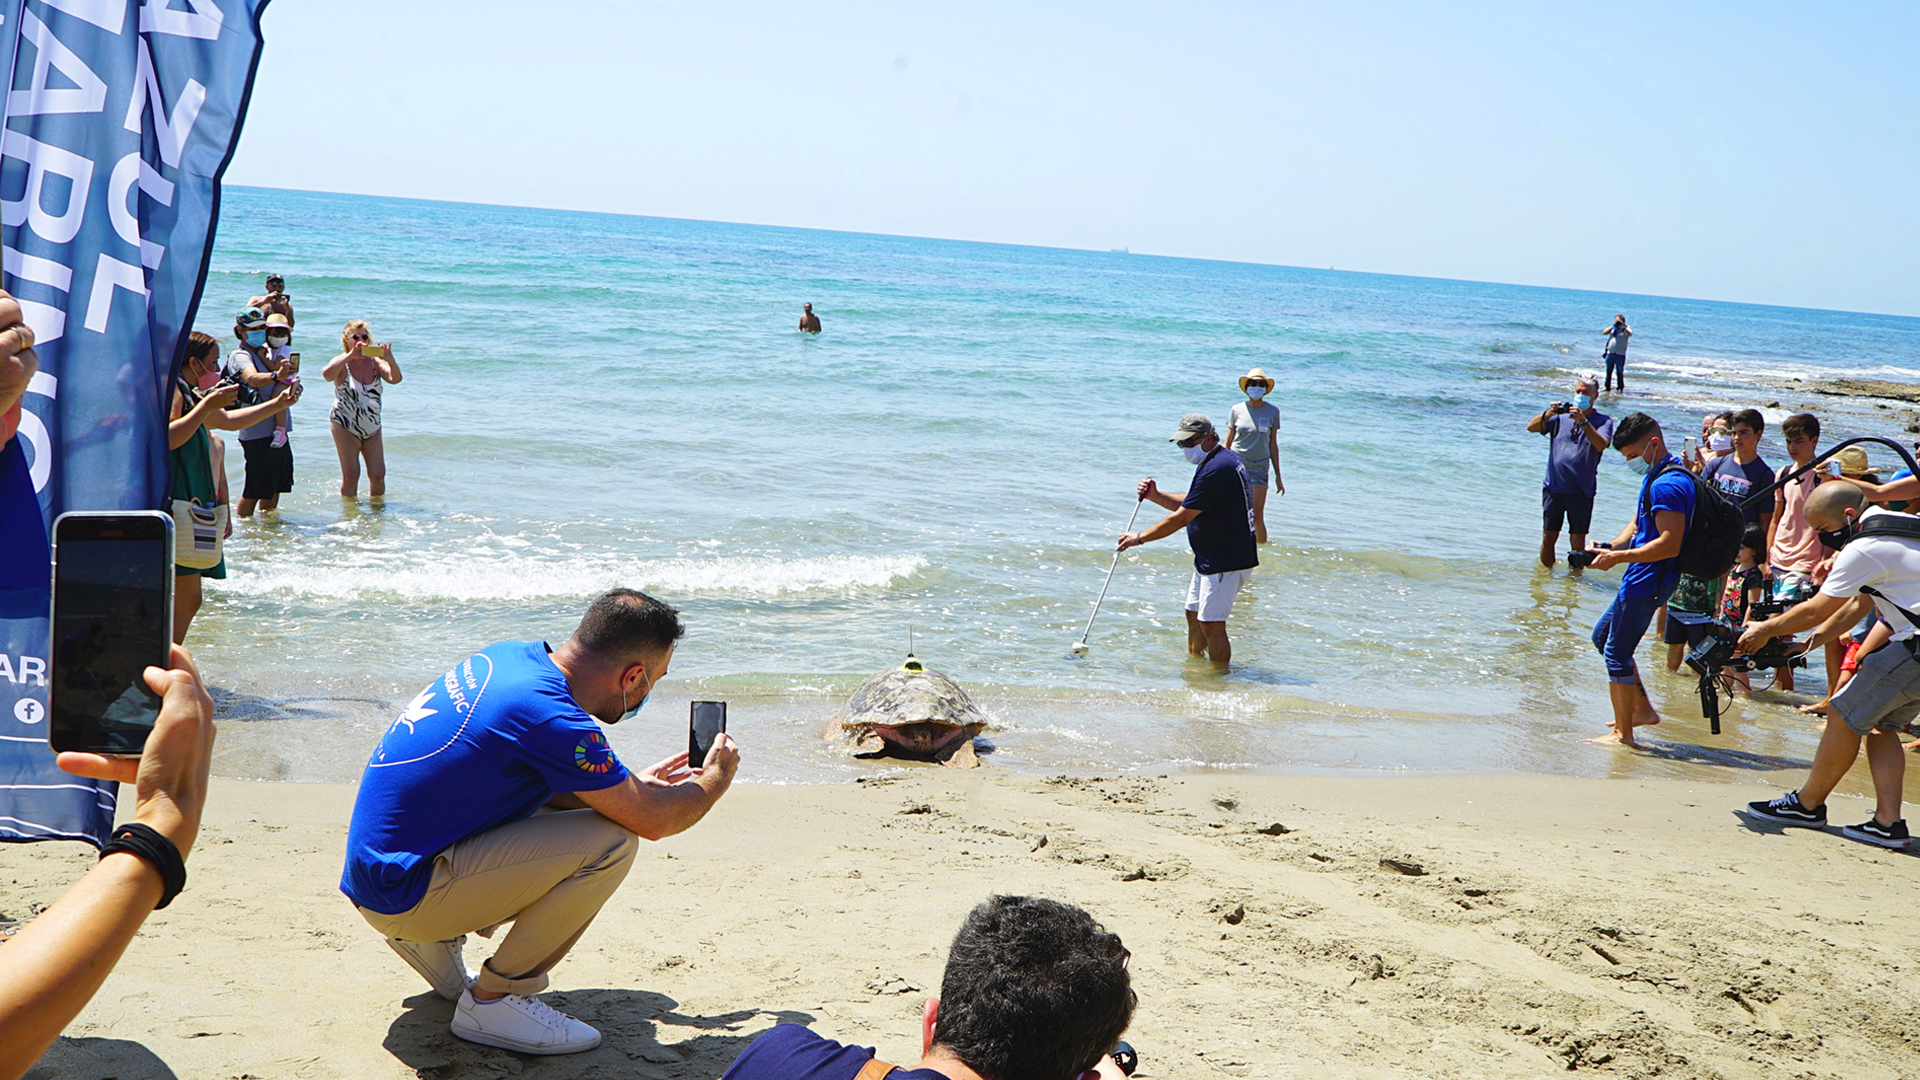 VIDEO: Turtlely Covered: Rescued Loggerhead Fitted With GPS To Track Its Epic Ocean Odyssey